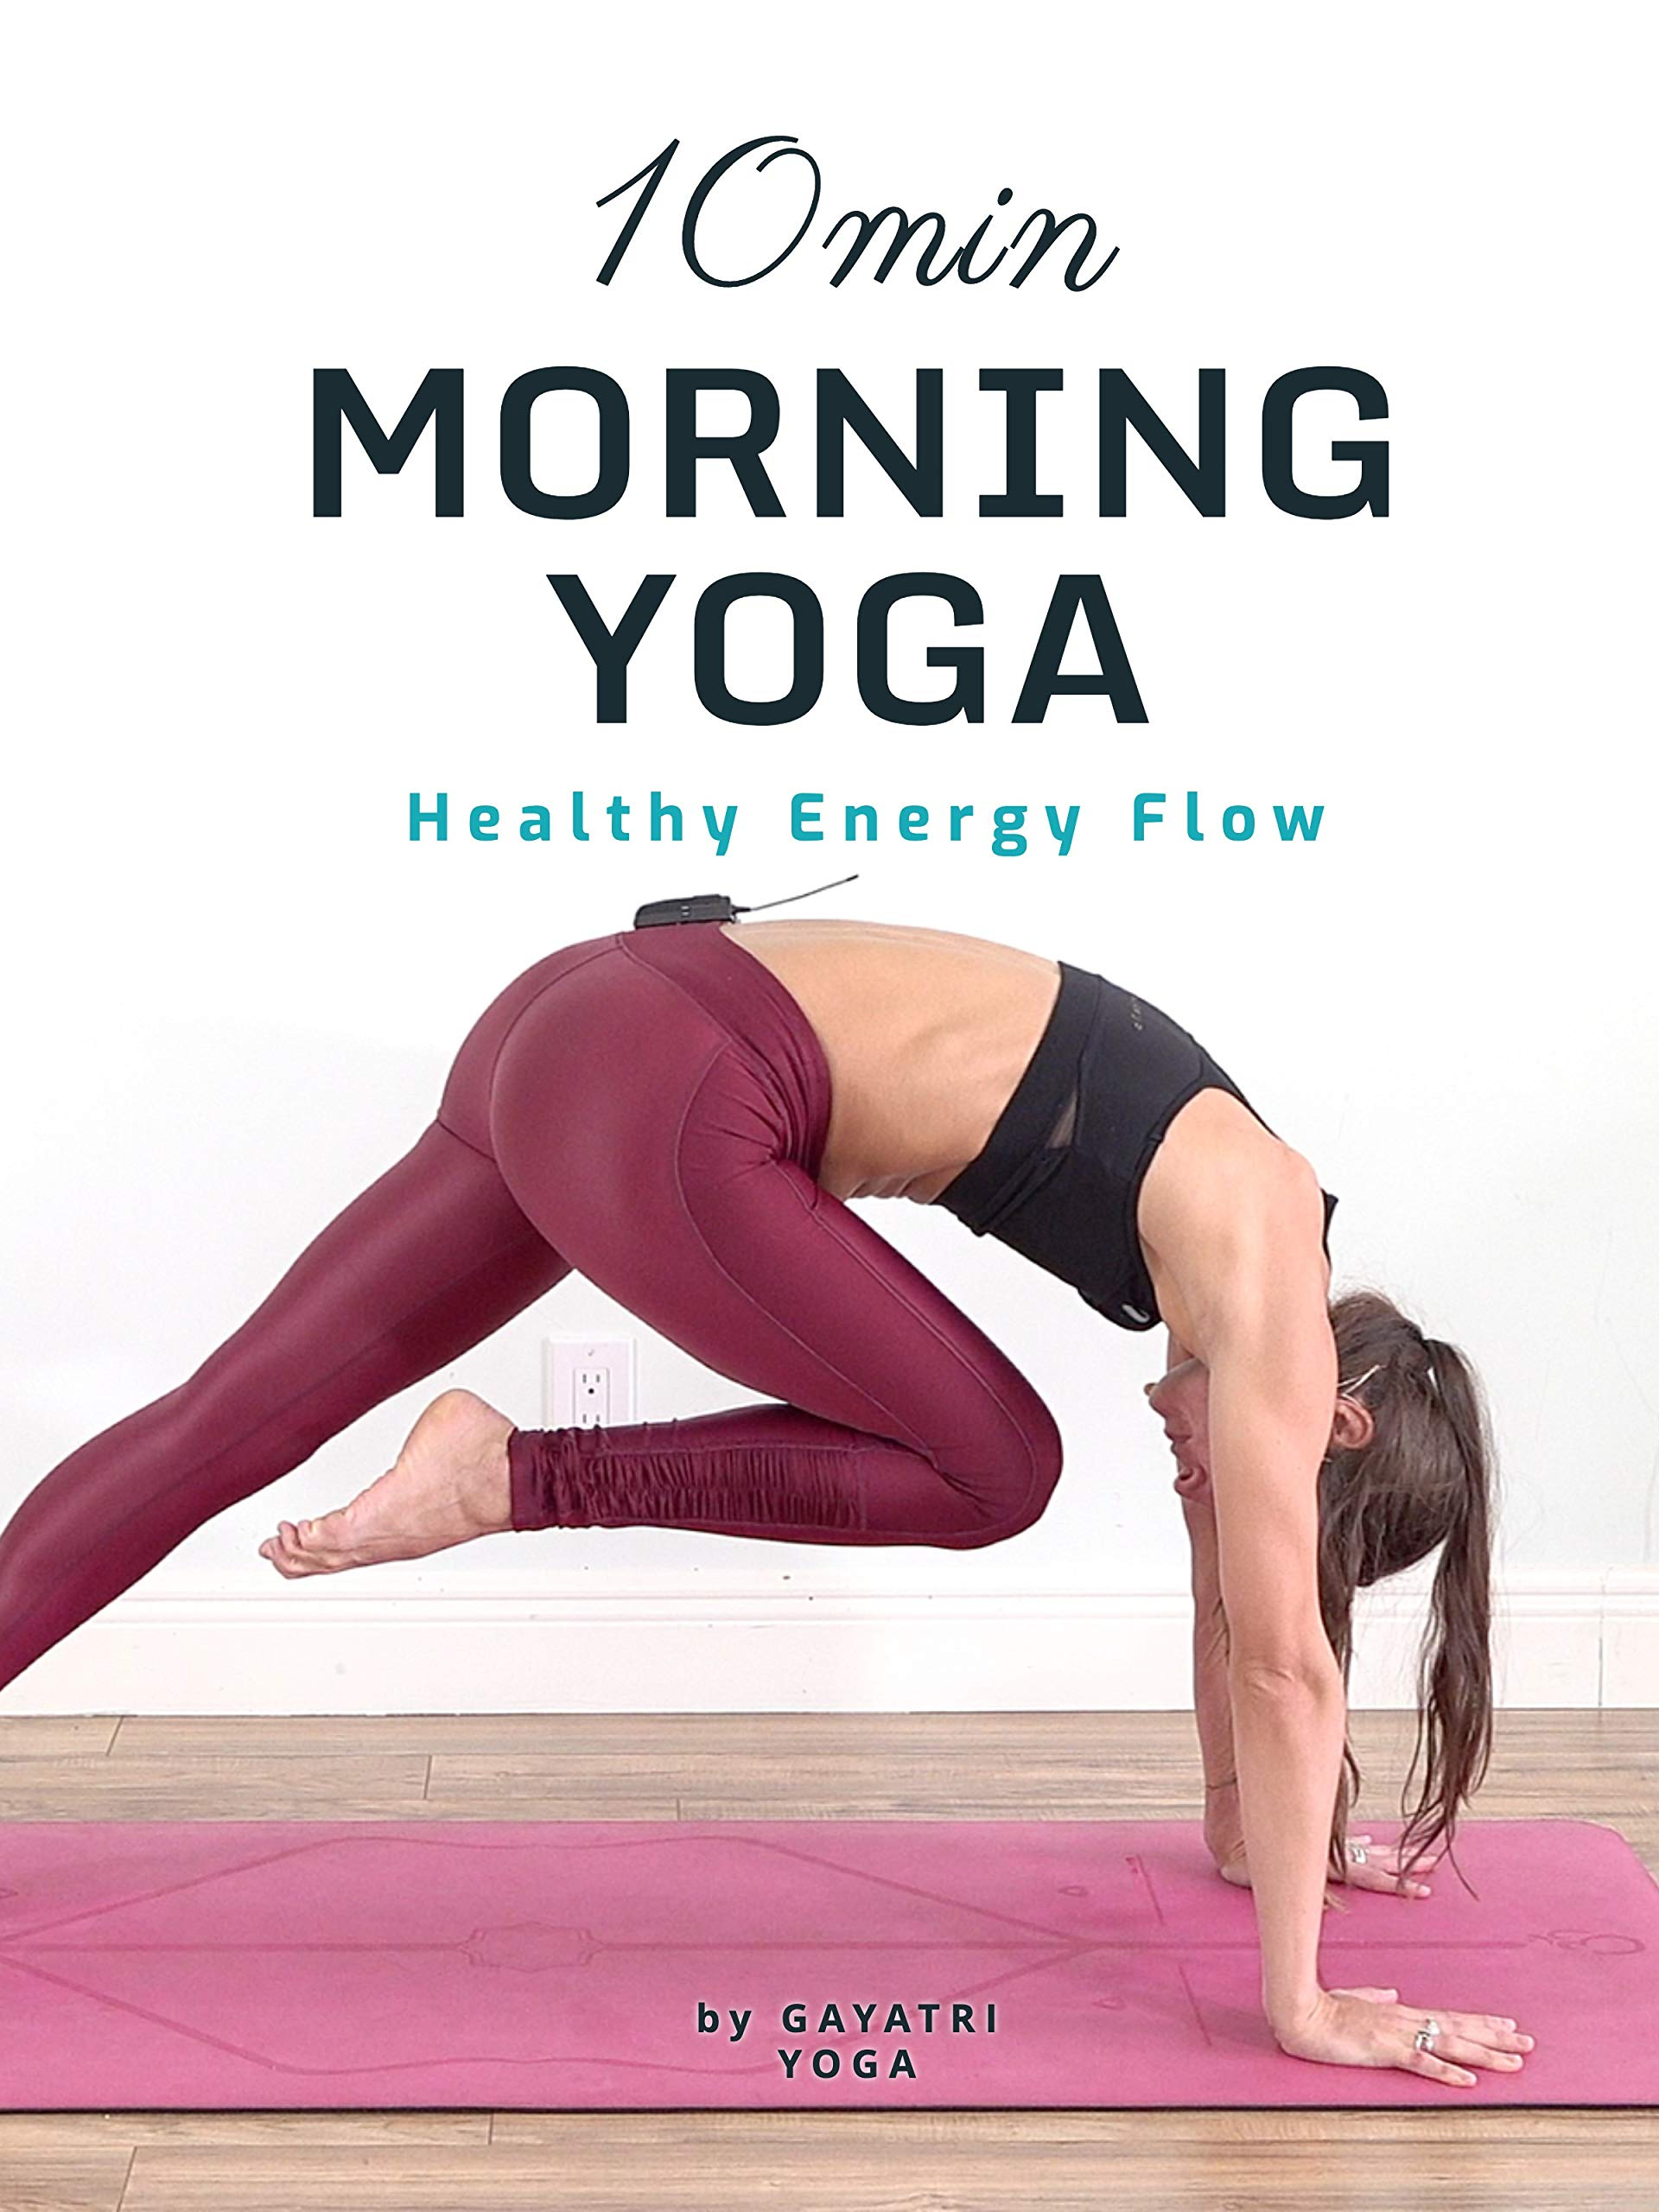 10 Min Morning Yoga | Healthy Energy Flow | Gayatri Yoga